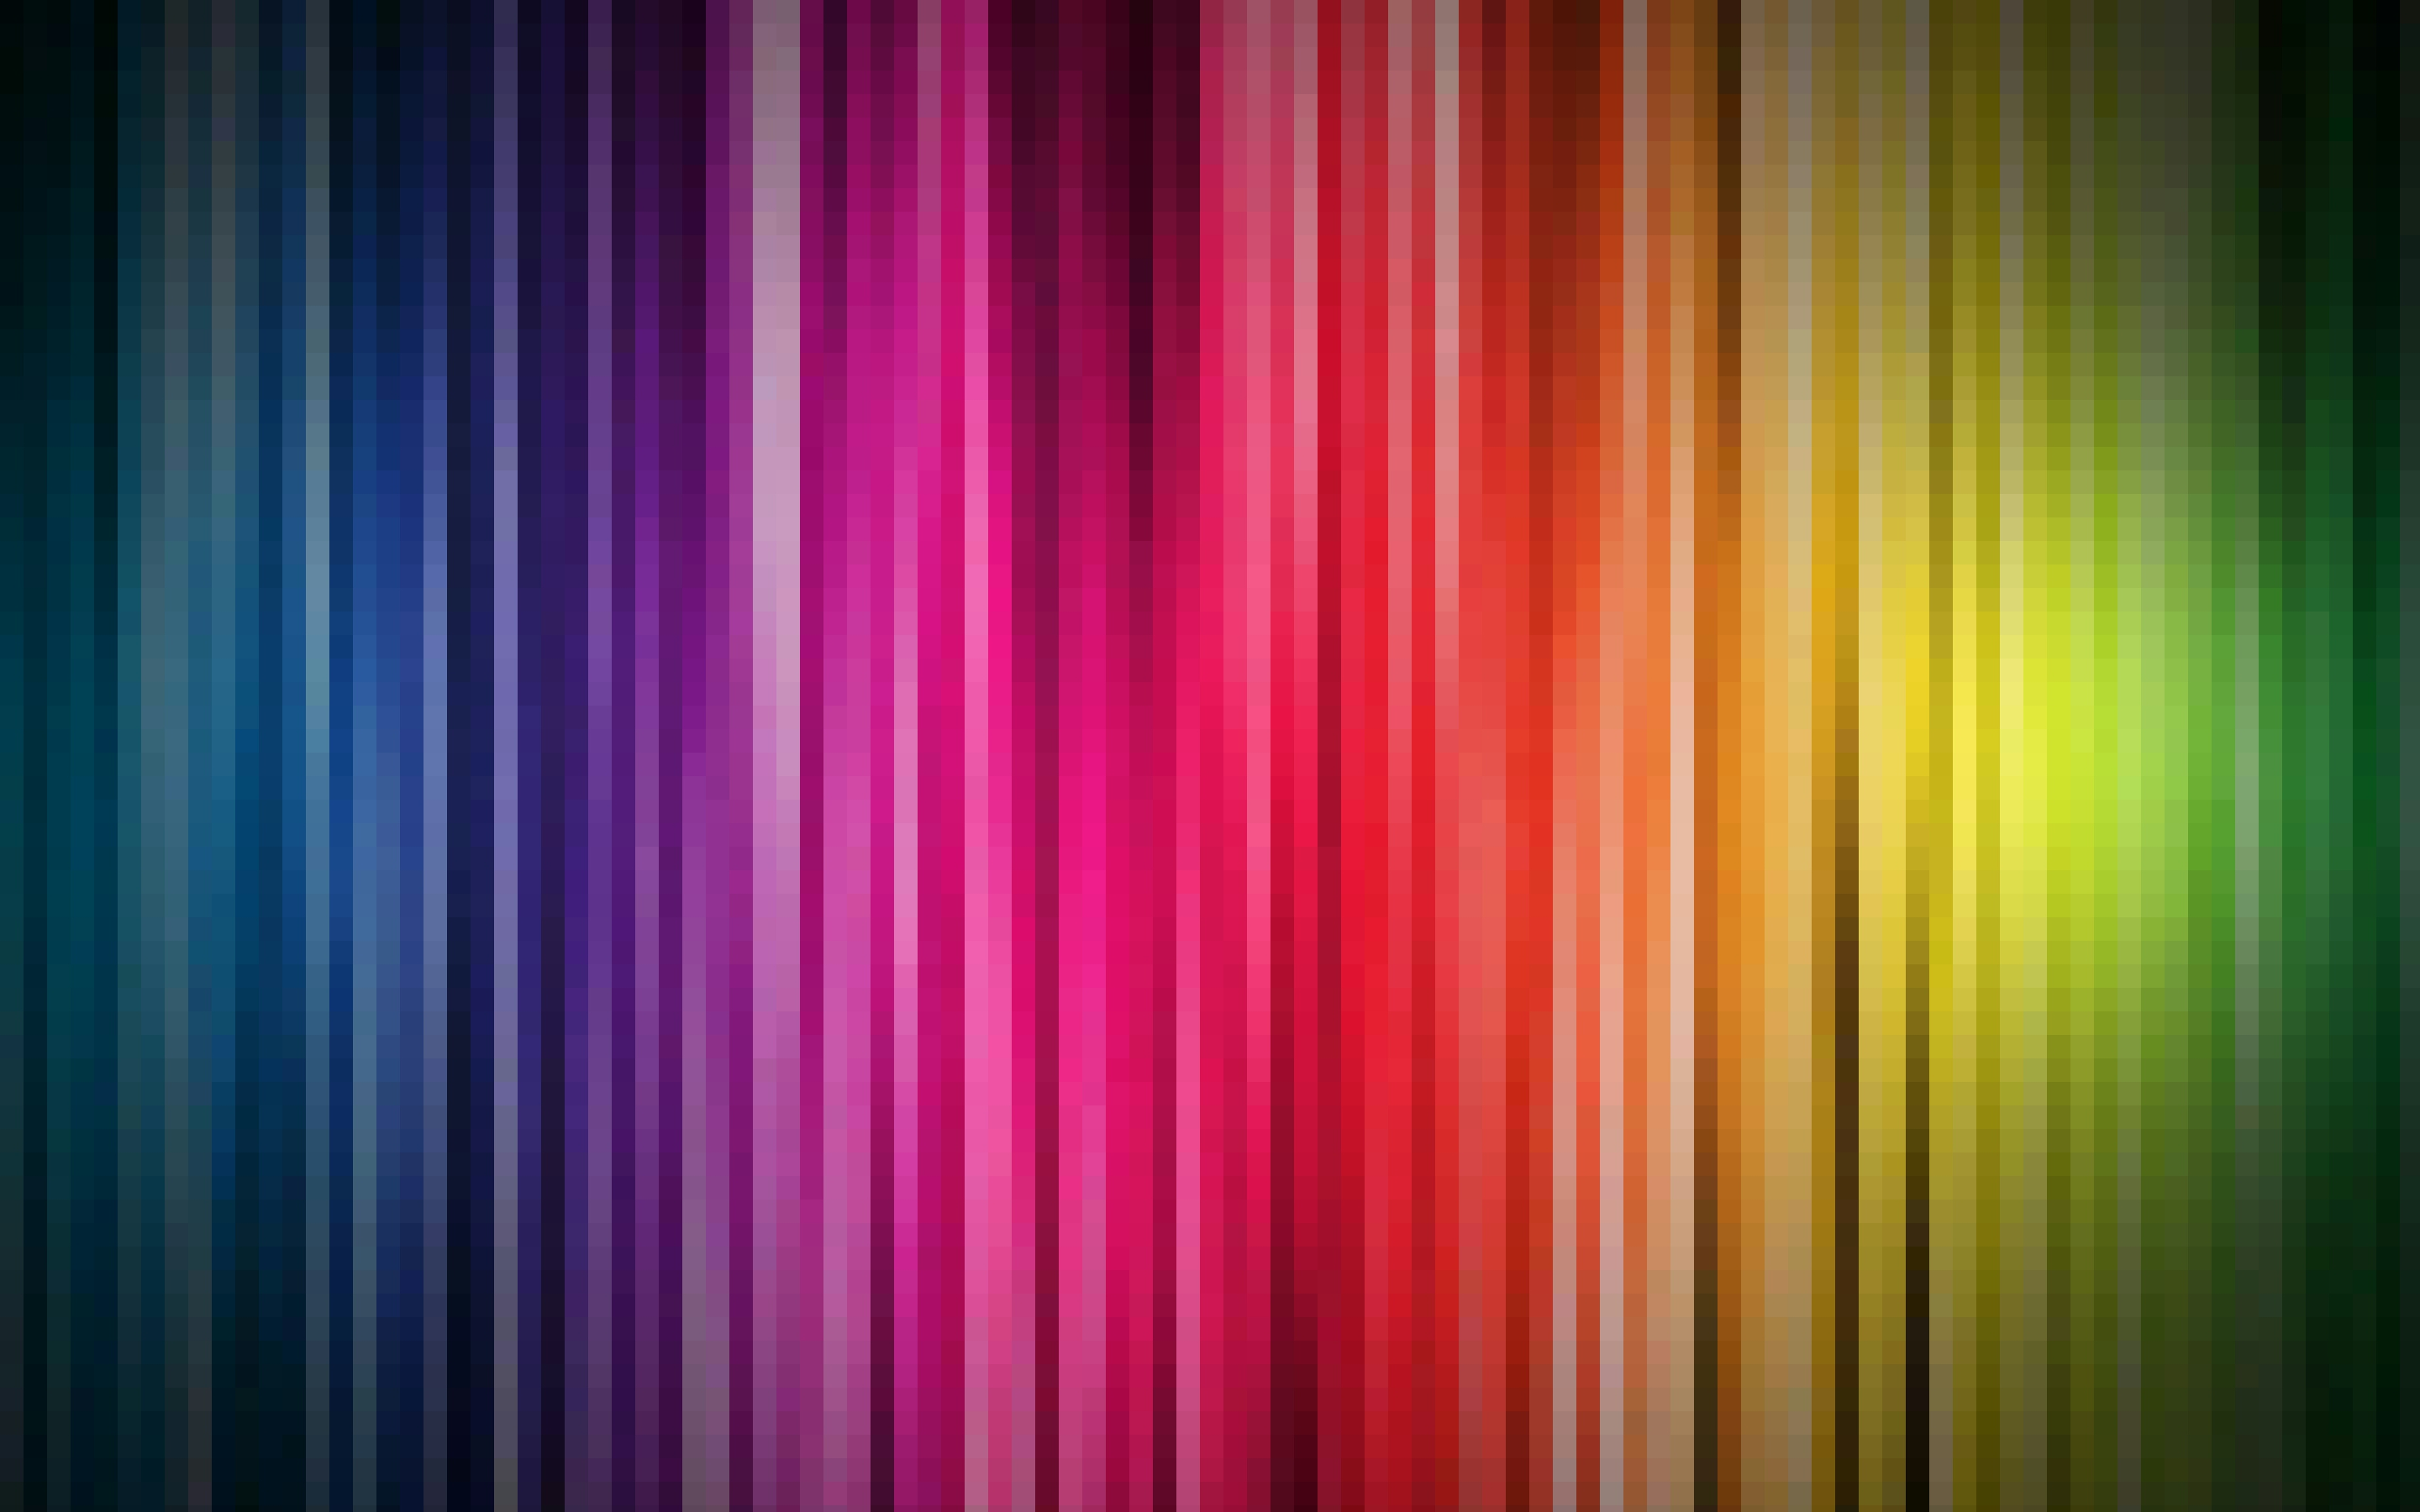 pixel rainbow wallpaper google - photo #15